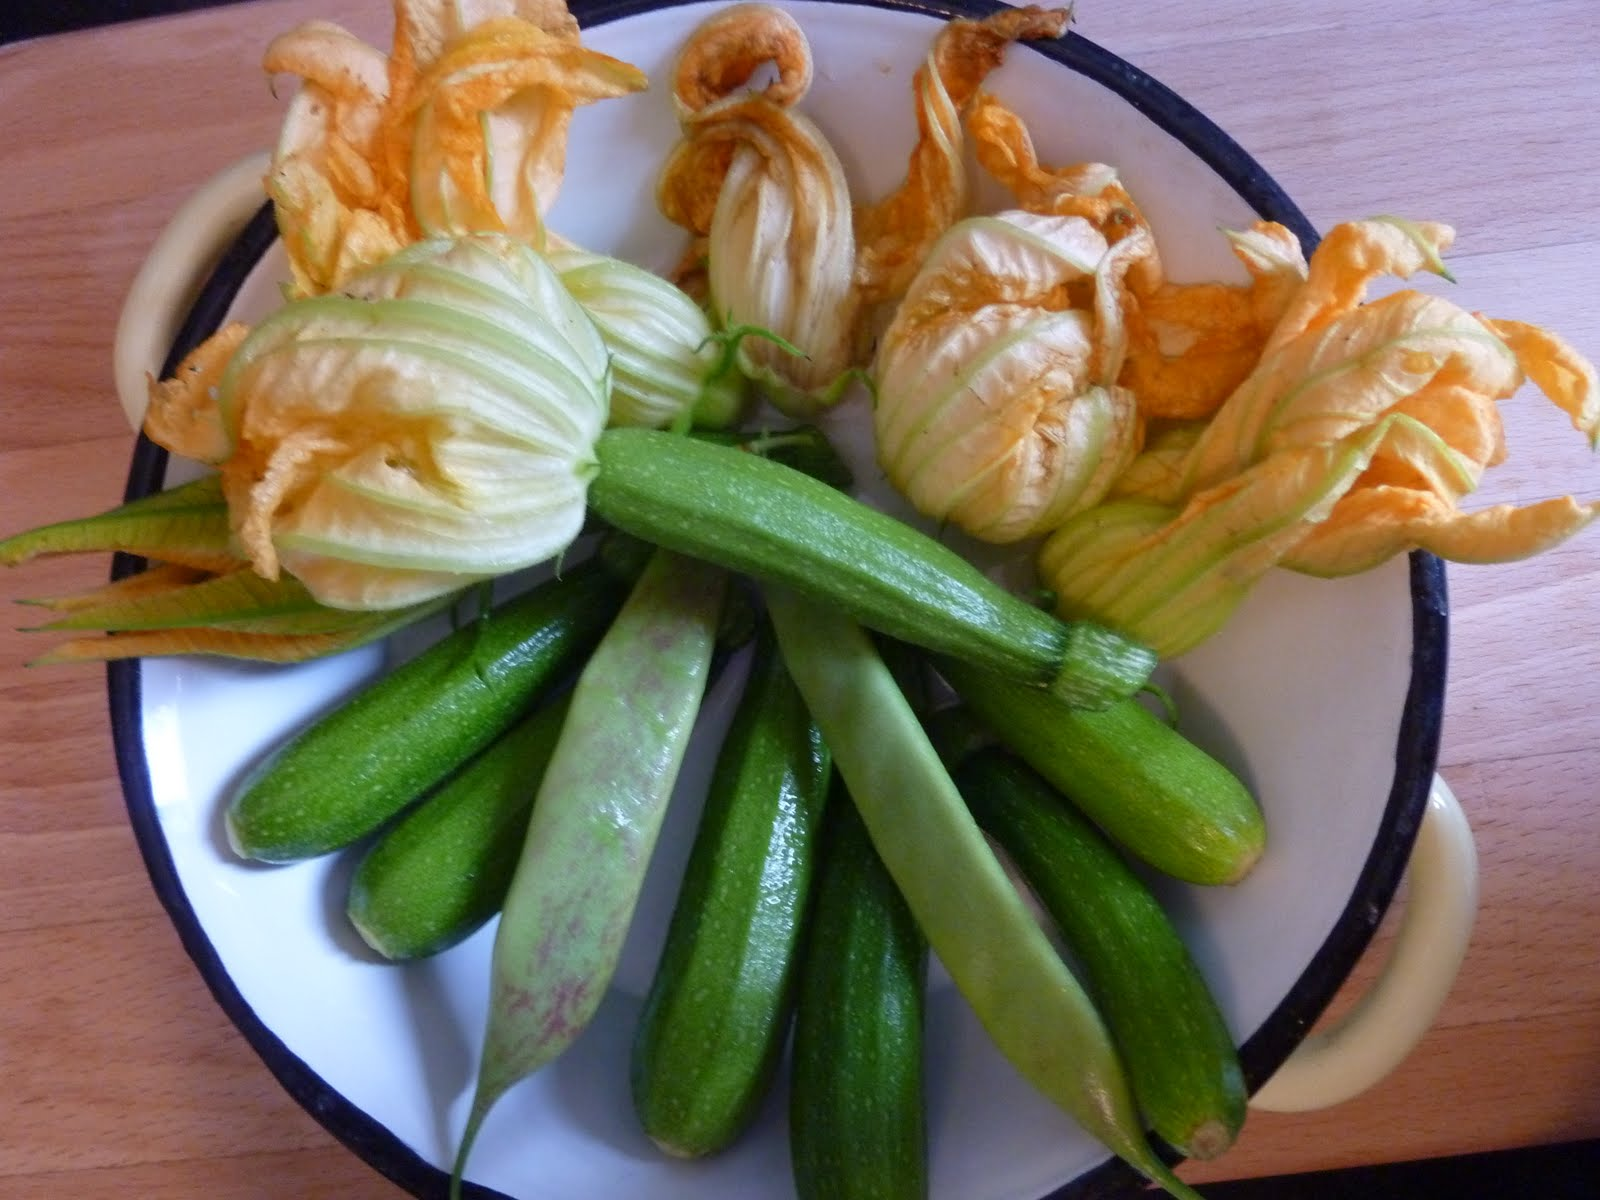 Stuffed (Hackney) Courgette Flowers with a Homemade Meatball Chaser